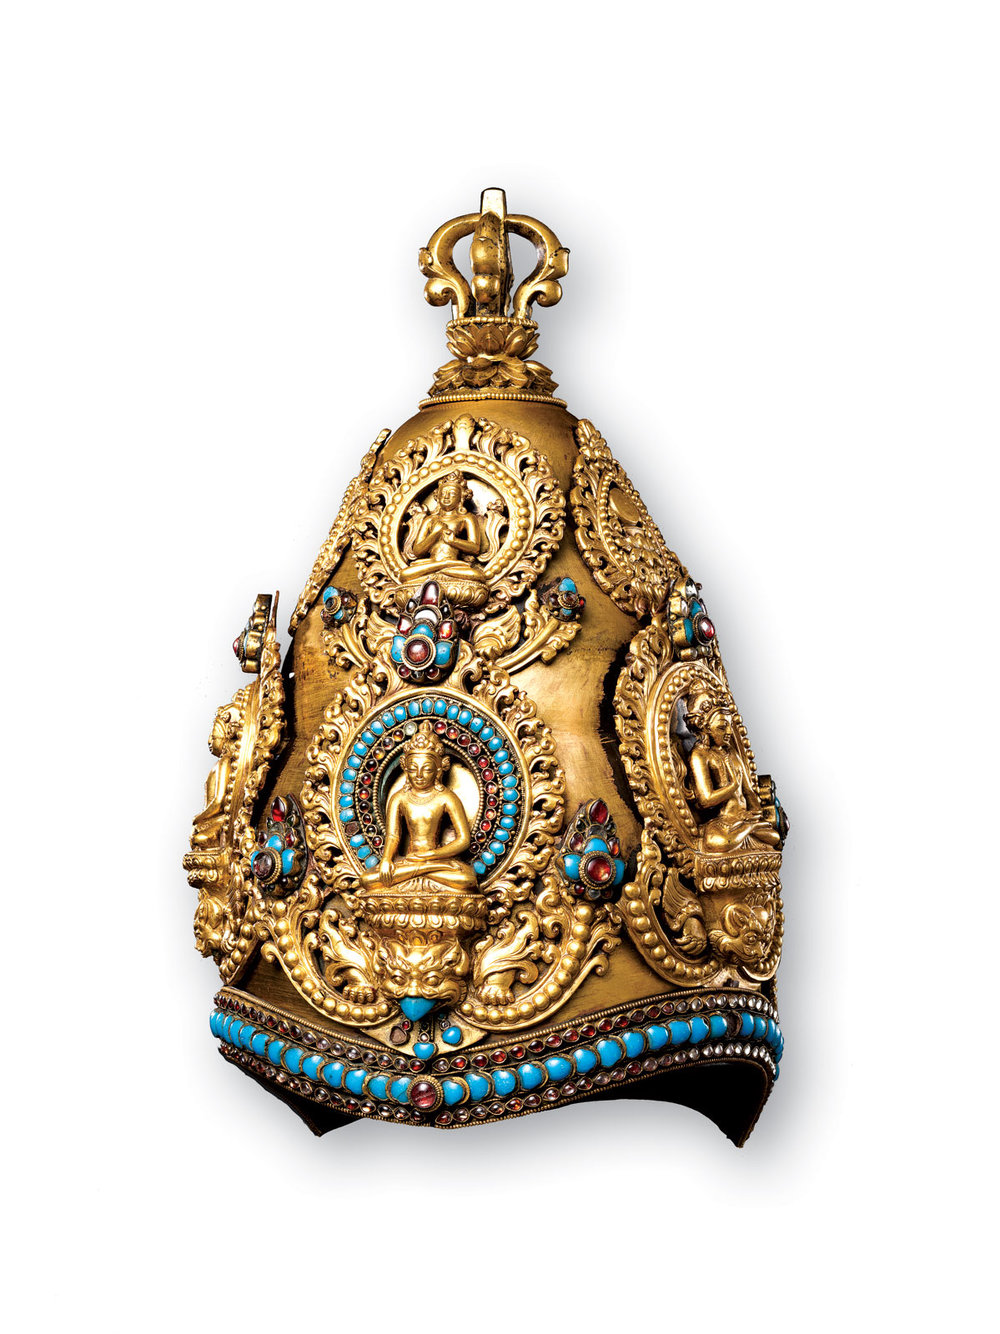 VAJRACARYA PRIEST'S CROWN of copper, gold, turquoise, semiprecious stones, silver foil, Nepalese, 34.3 x 21.7 x 23.0 centimeters, circa fifteenth/sixteenth century.  Rogers Fund, 1948. Collection of Metropolitan Museum of Art.